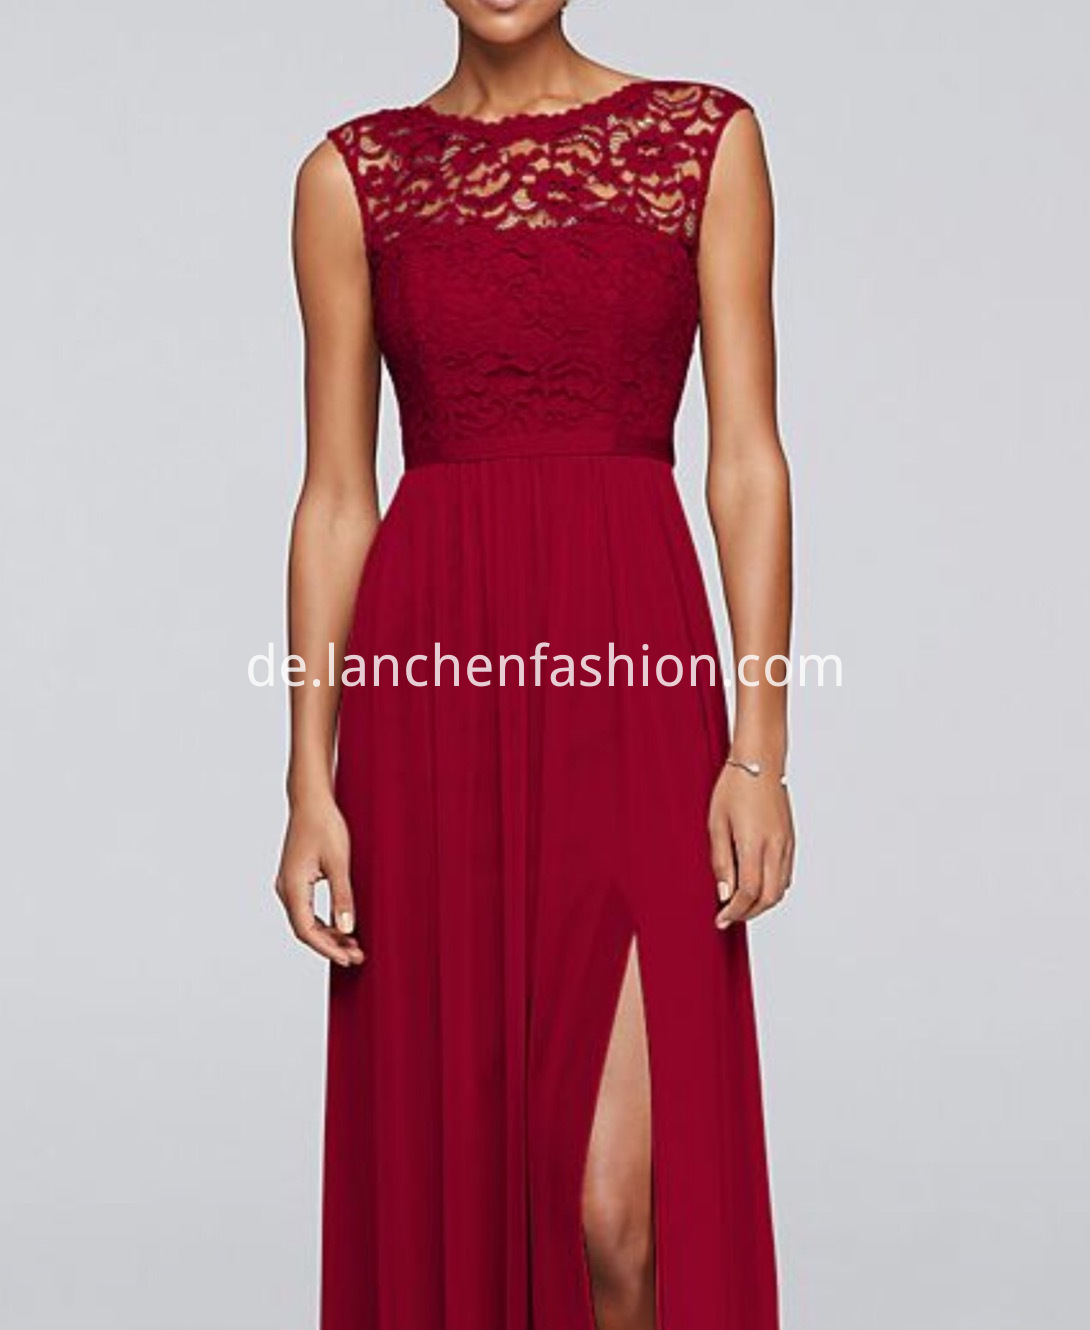 Bridesmaid Dress in Red